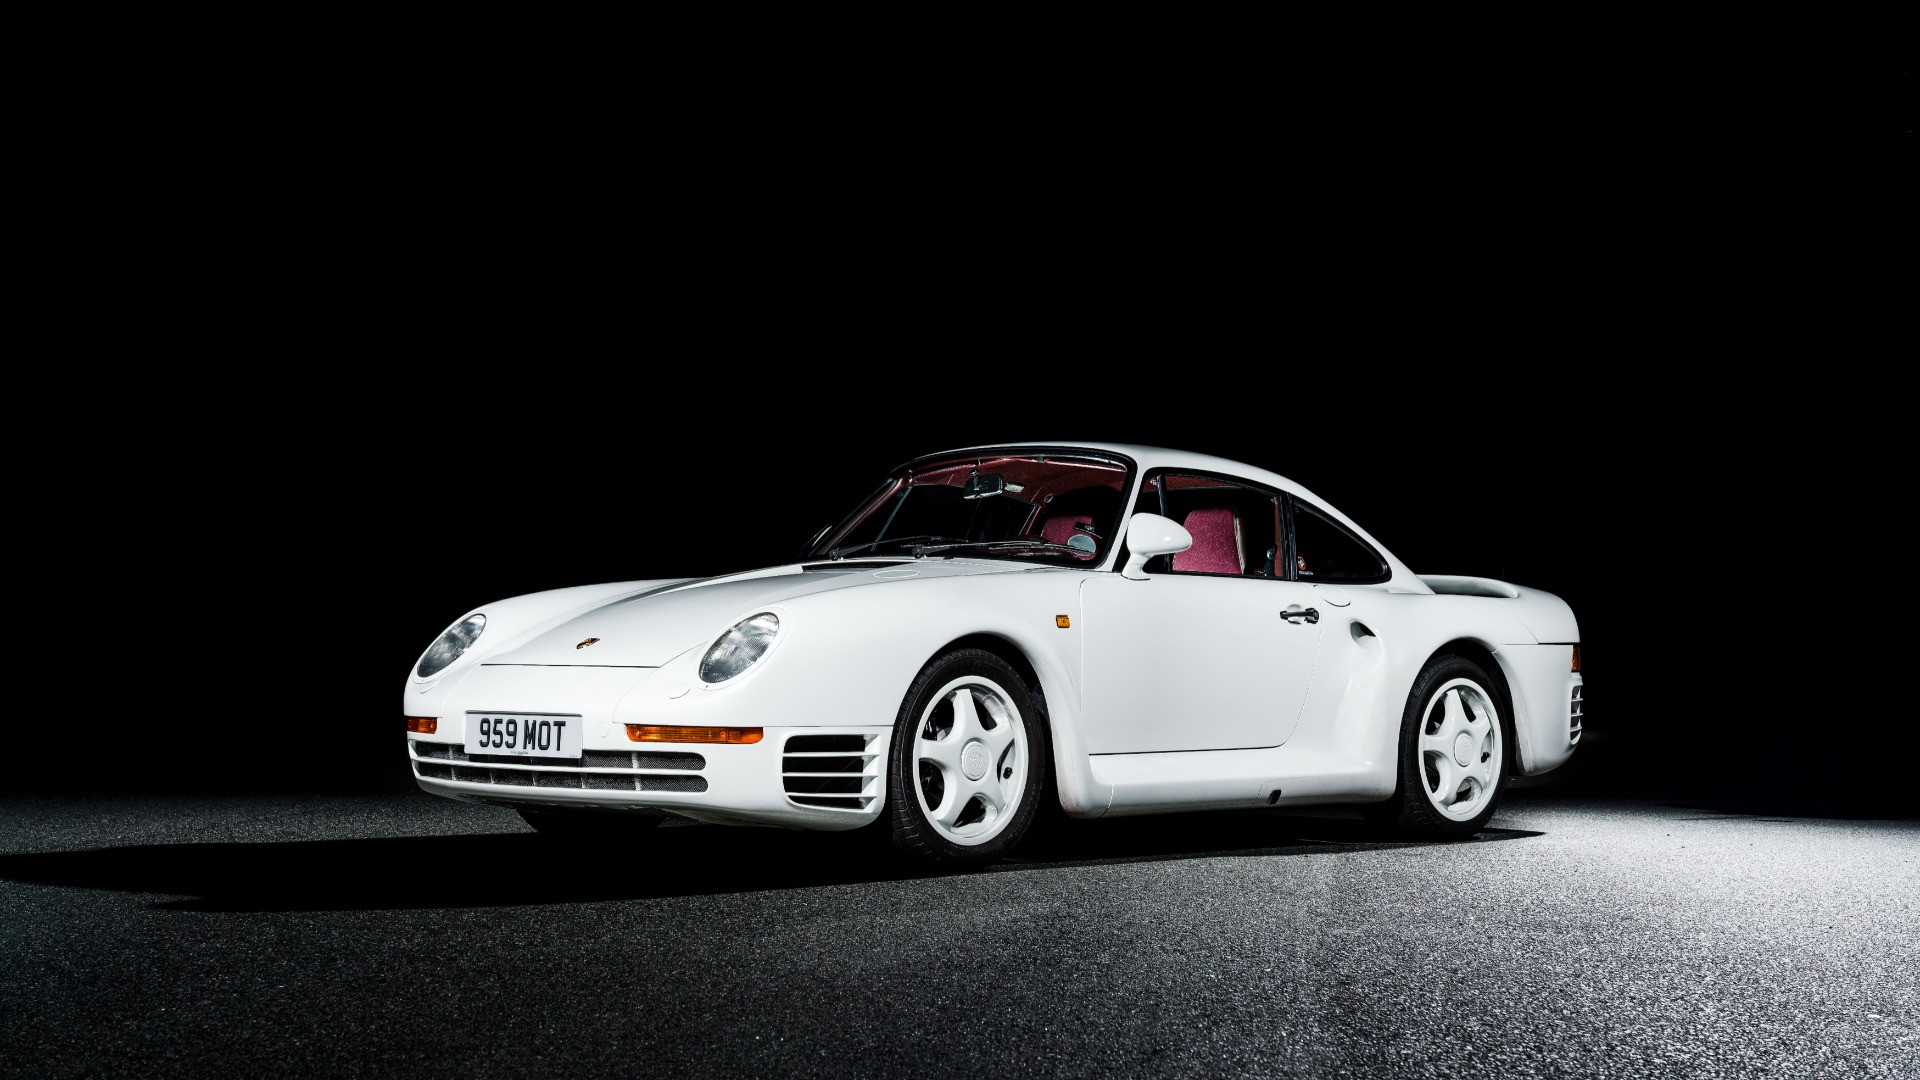 Used 1988 Porsche 959 KOMFORT COUPE / AWD / 6-SPEED MANUAL / ORIGINAL SUPERCAR for sale $1,425,000 at Formula Imports in Charlotte NC 28227 1